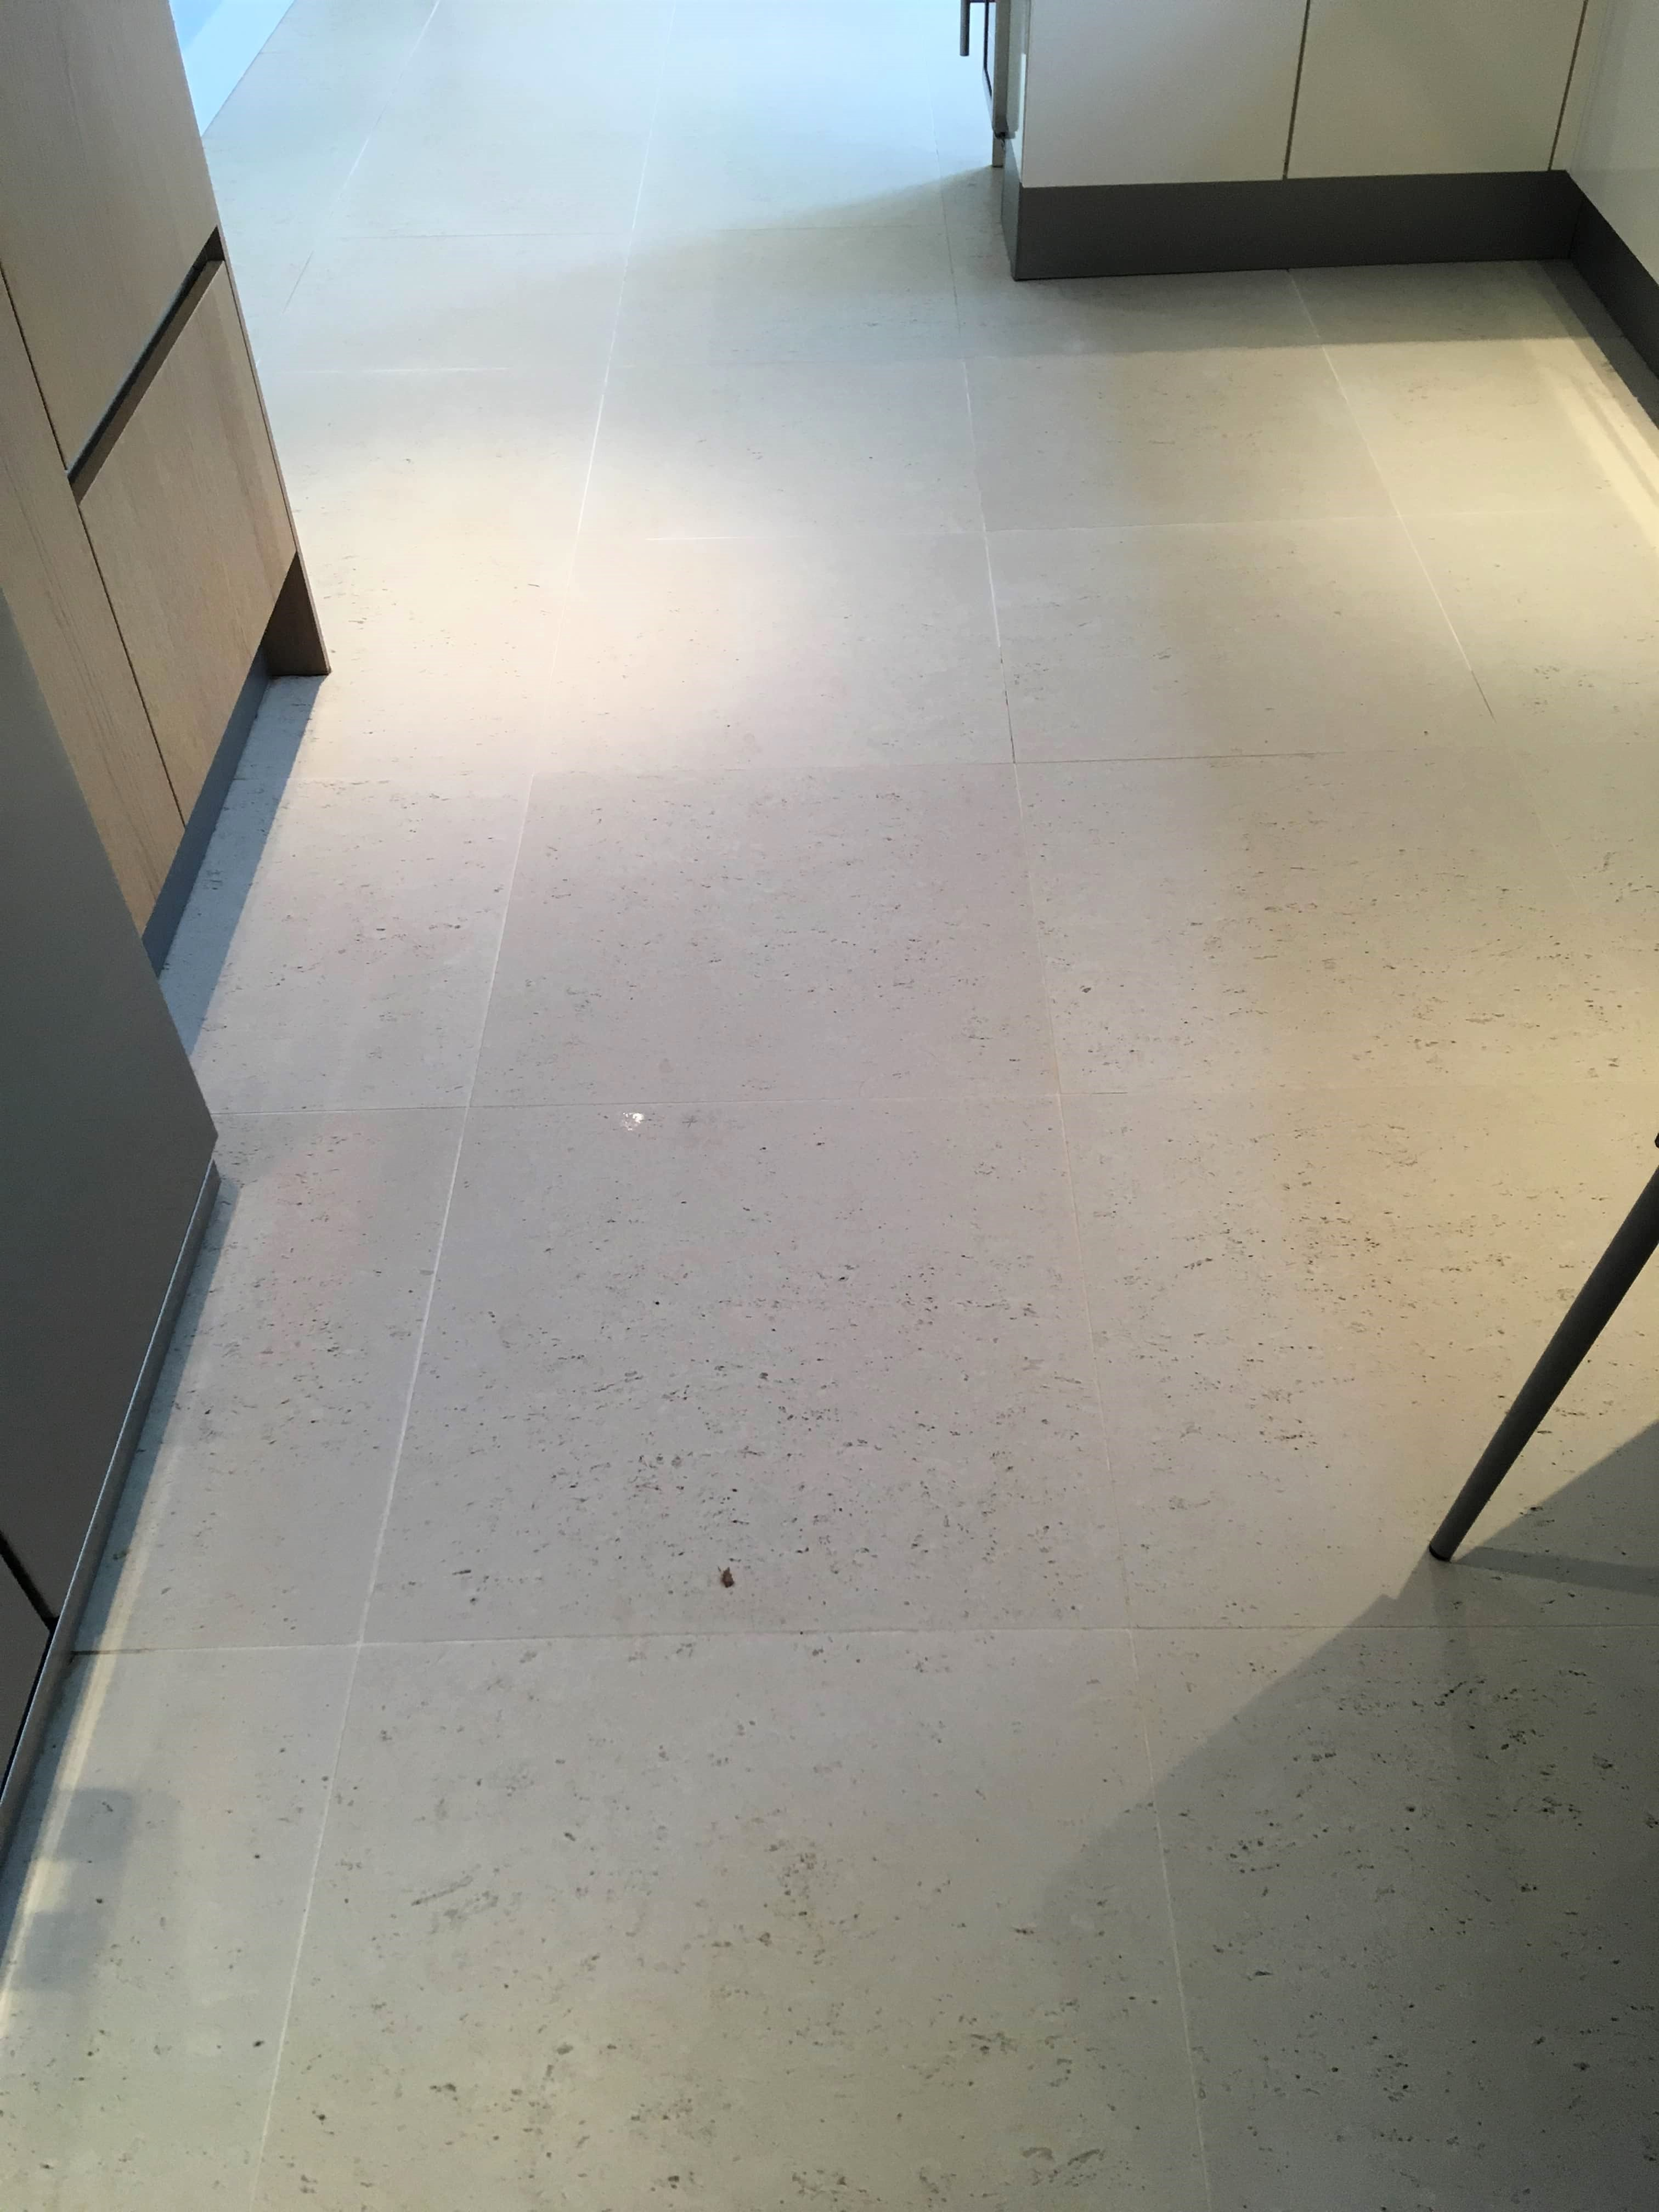 Deep Cleaning Cream Porcelain Tile And Grout In A Middlesex Kitchen Porcelain Tile Cleaning And Maintenance